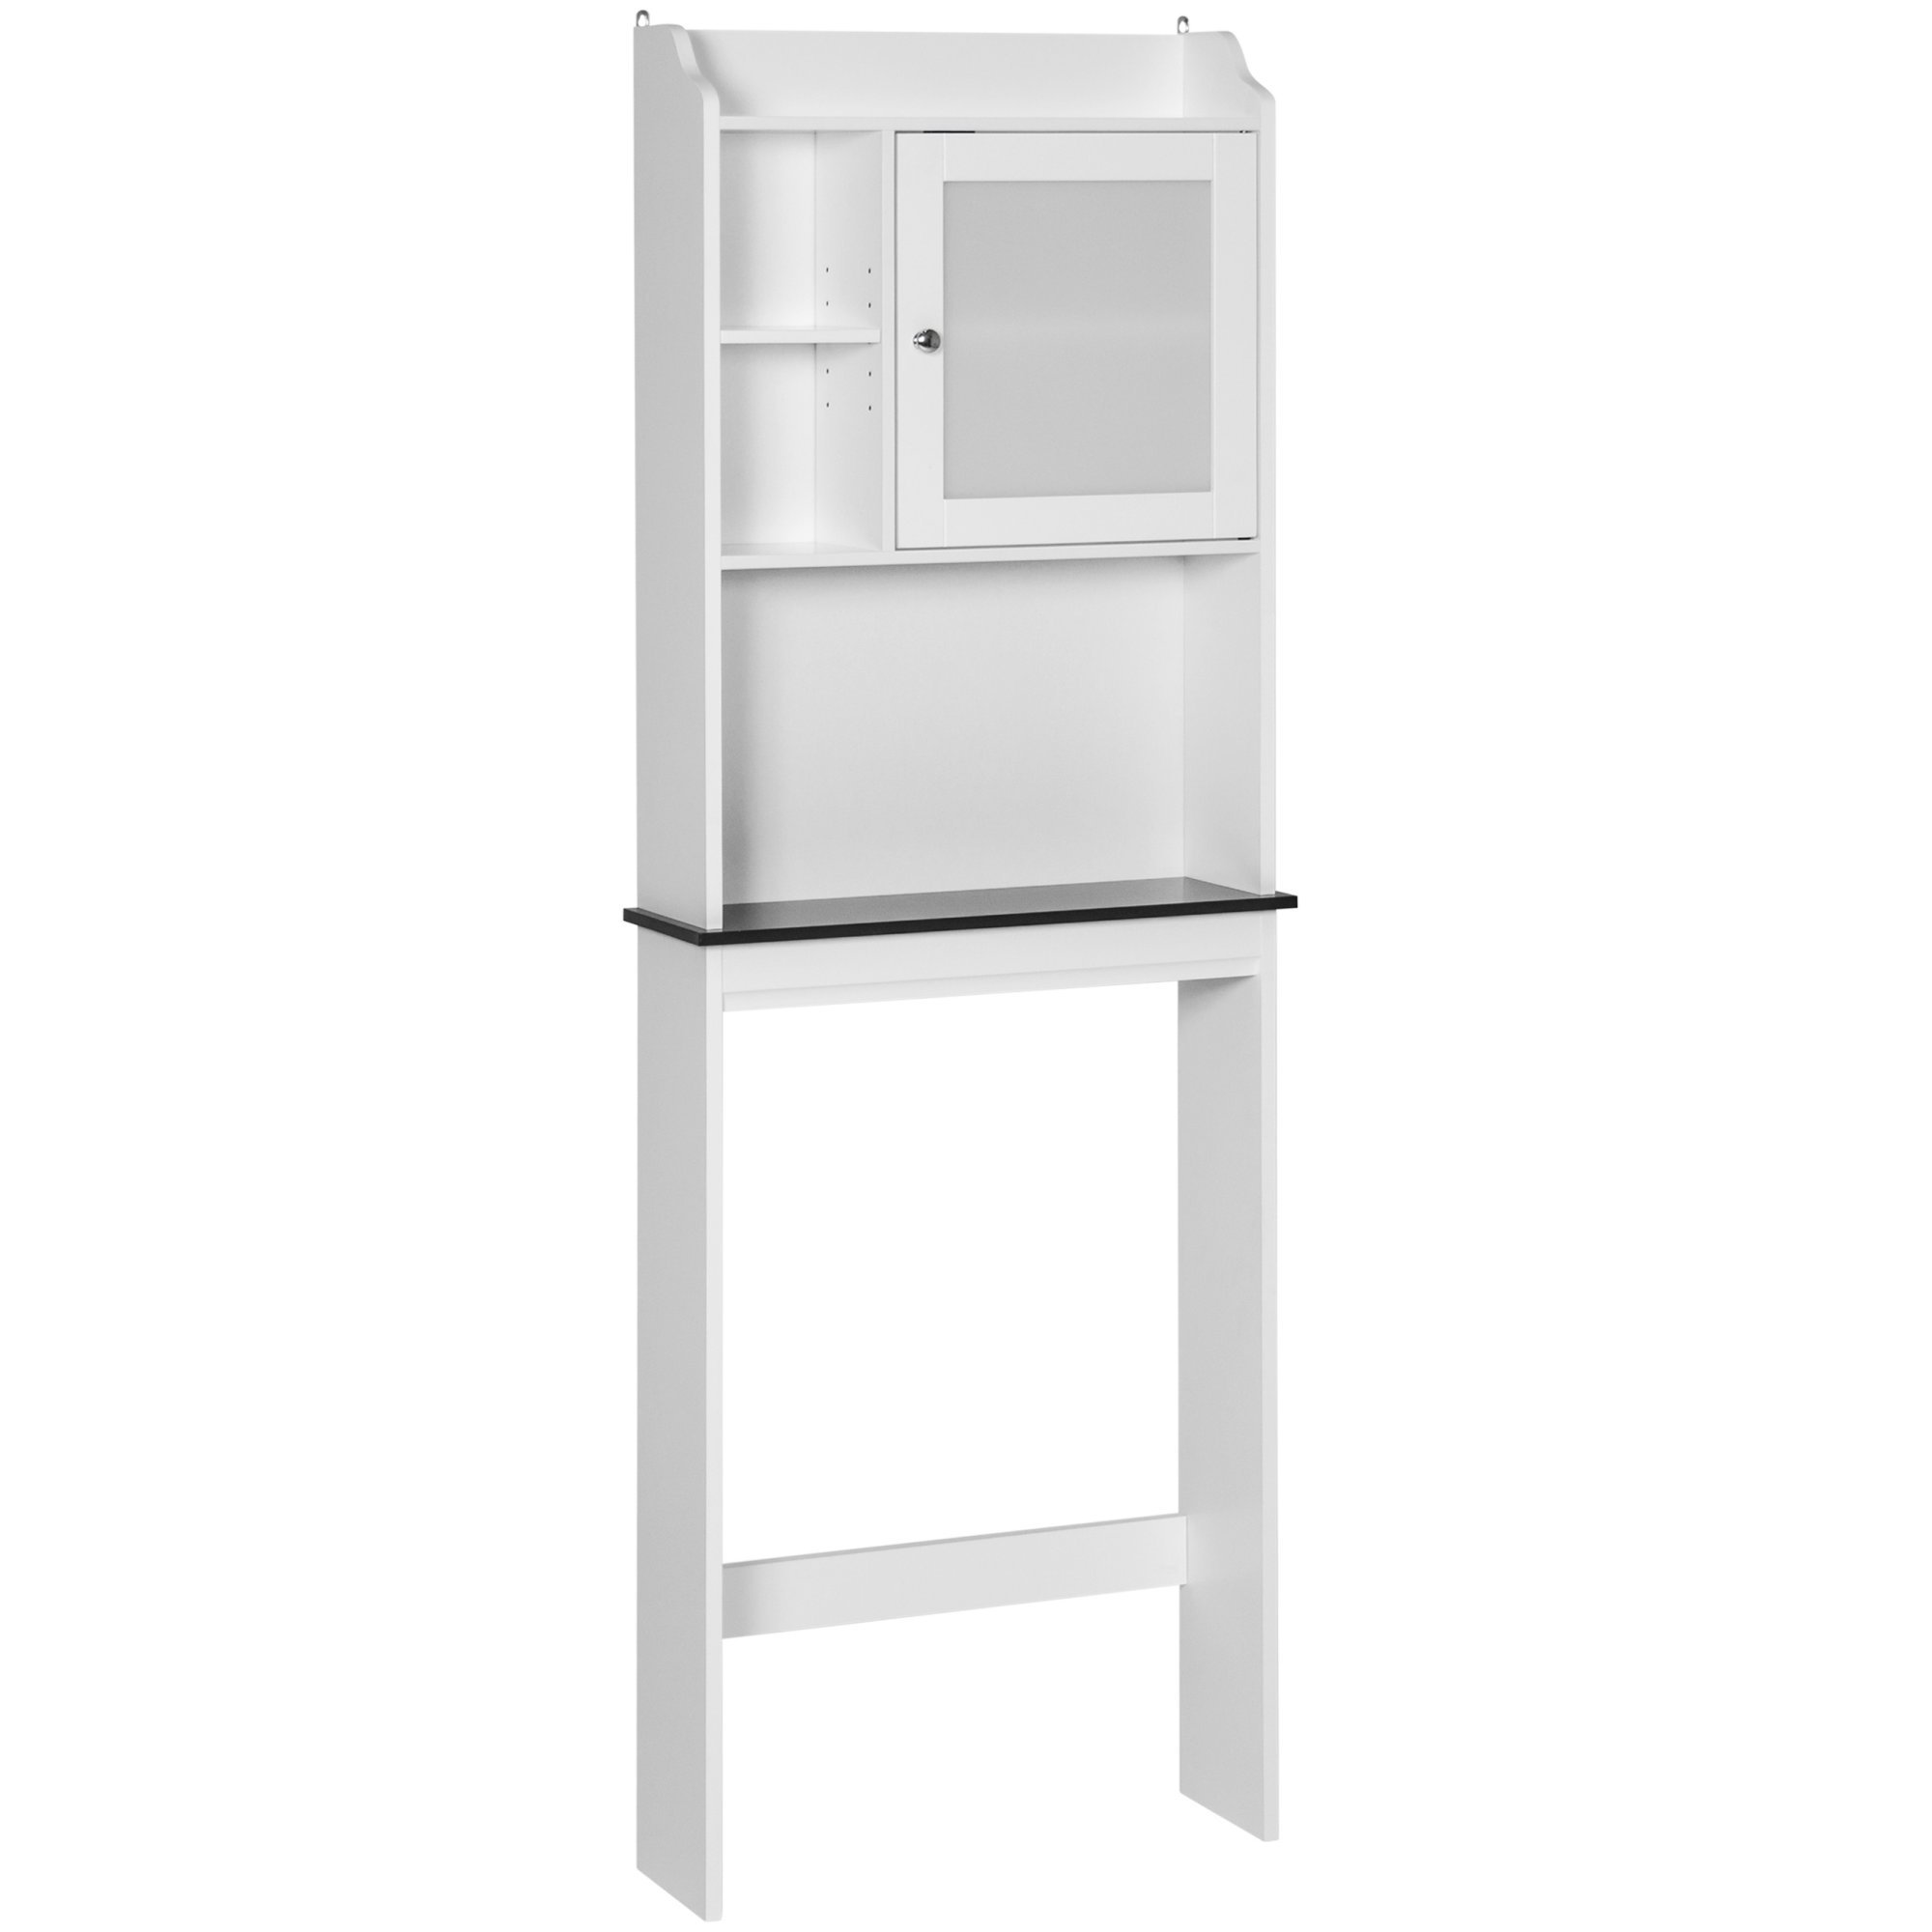 Bathroom Over The Toilet Space Saver Storage Cabinet, Modern Contemporary Design White Finish Slim Profile Provides Extra Storage While Saving Plenty of Bathroom Space by AVA Furniture